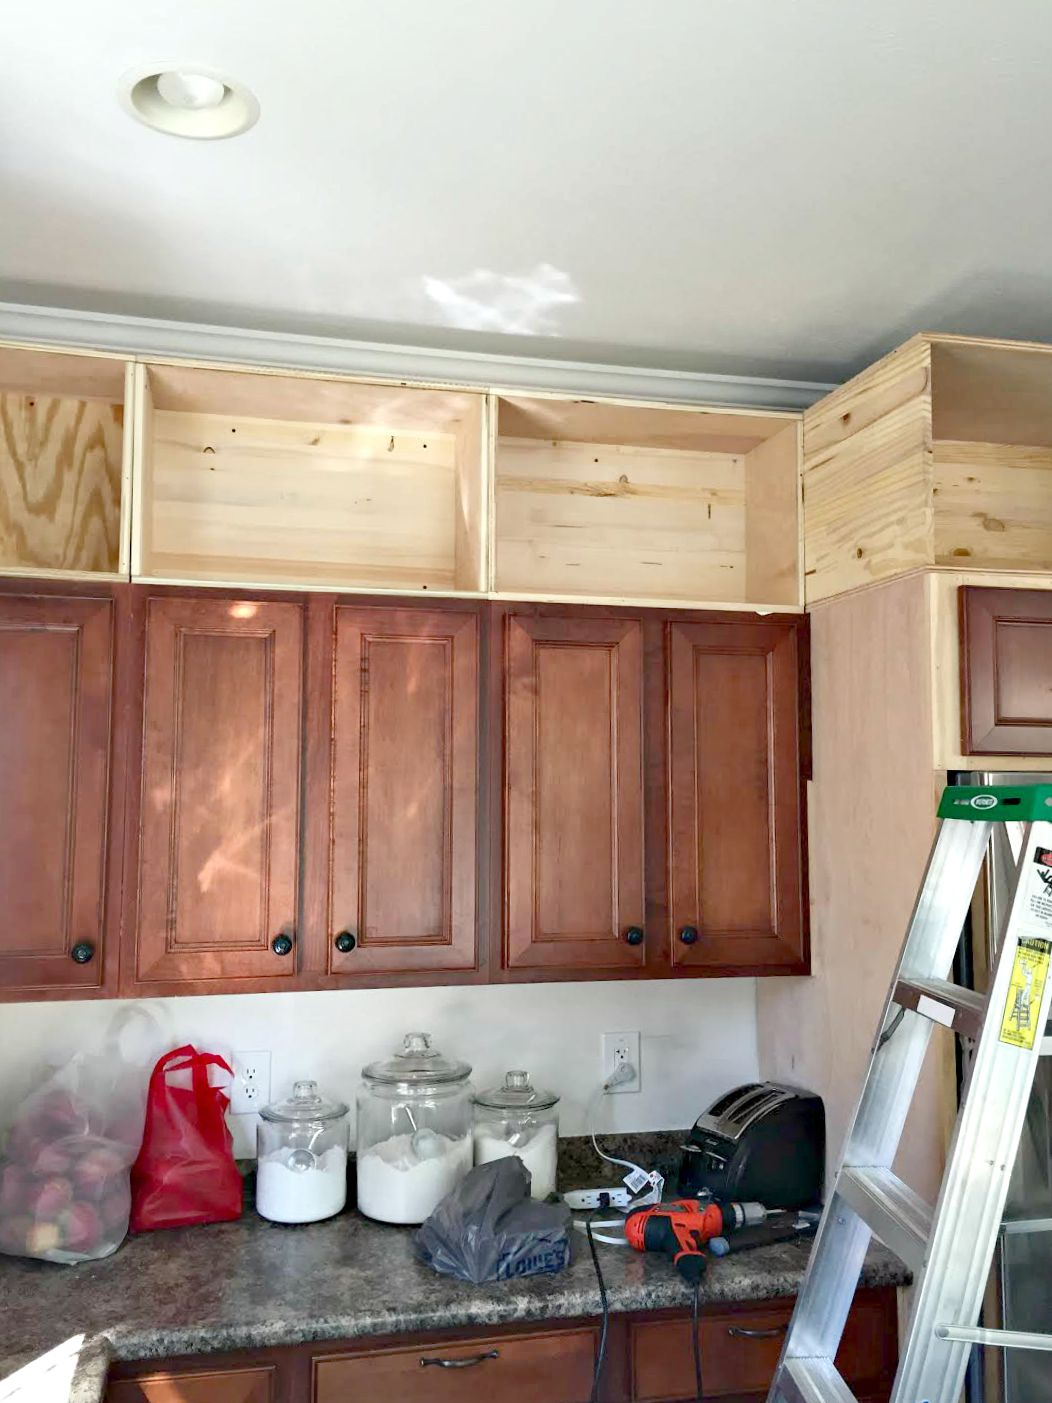 Building cabinets up to the ceiling from thrifty decor chick - What to do with the space above kitchen cabinets ...